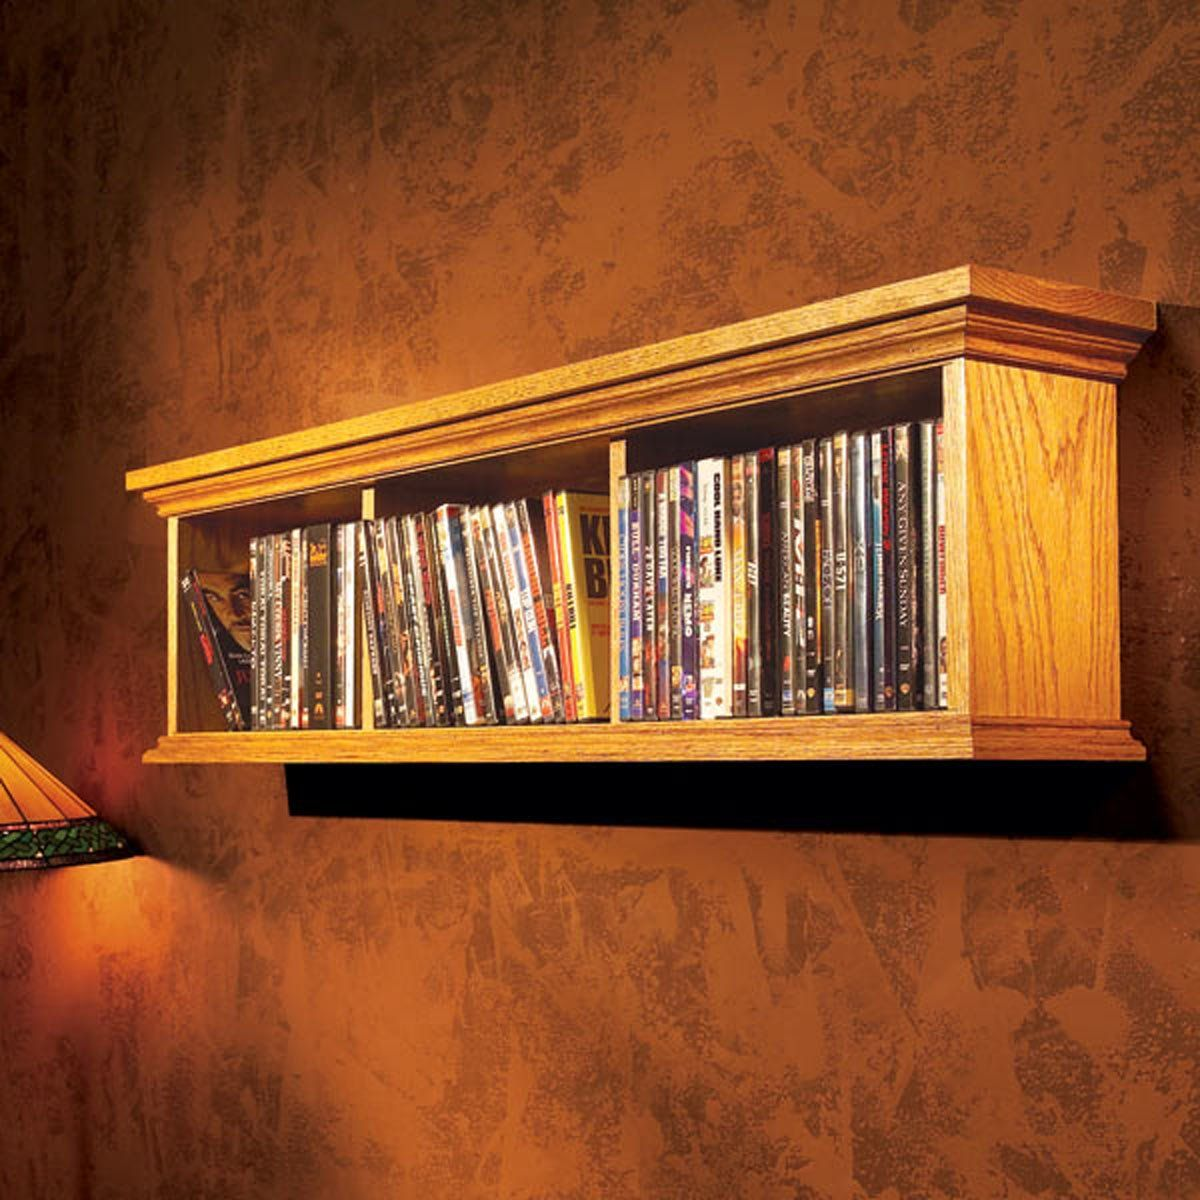 The Top 10 Woodworking Projects Huis Knutsel Ideeen